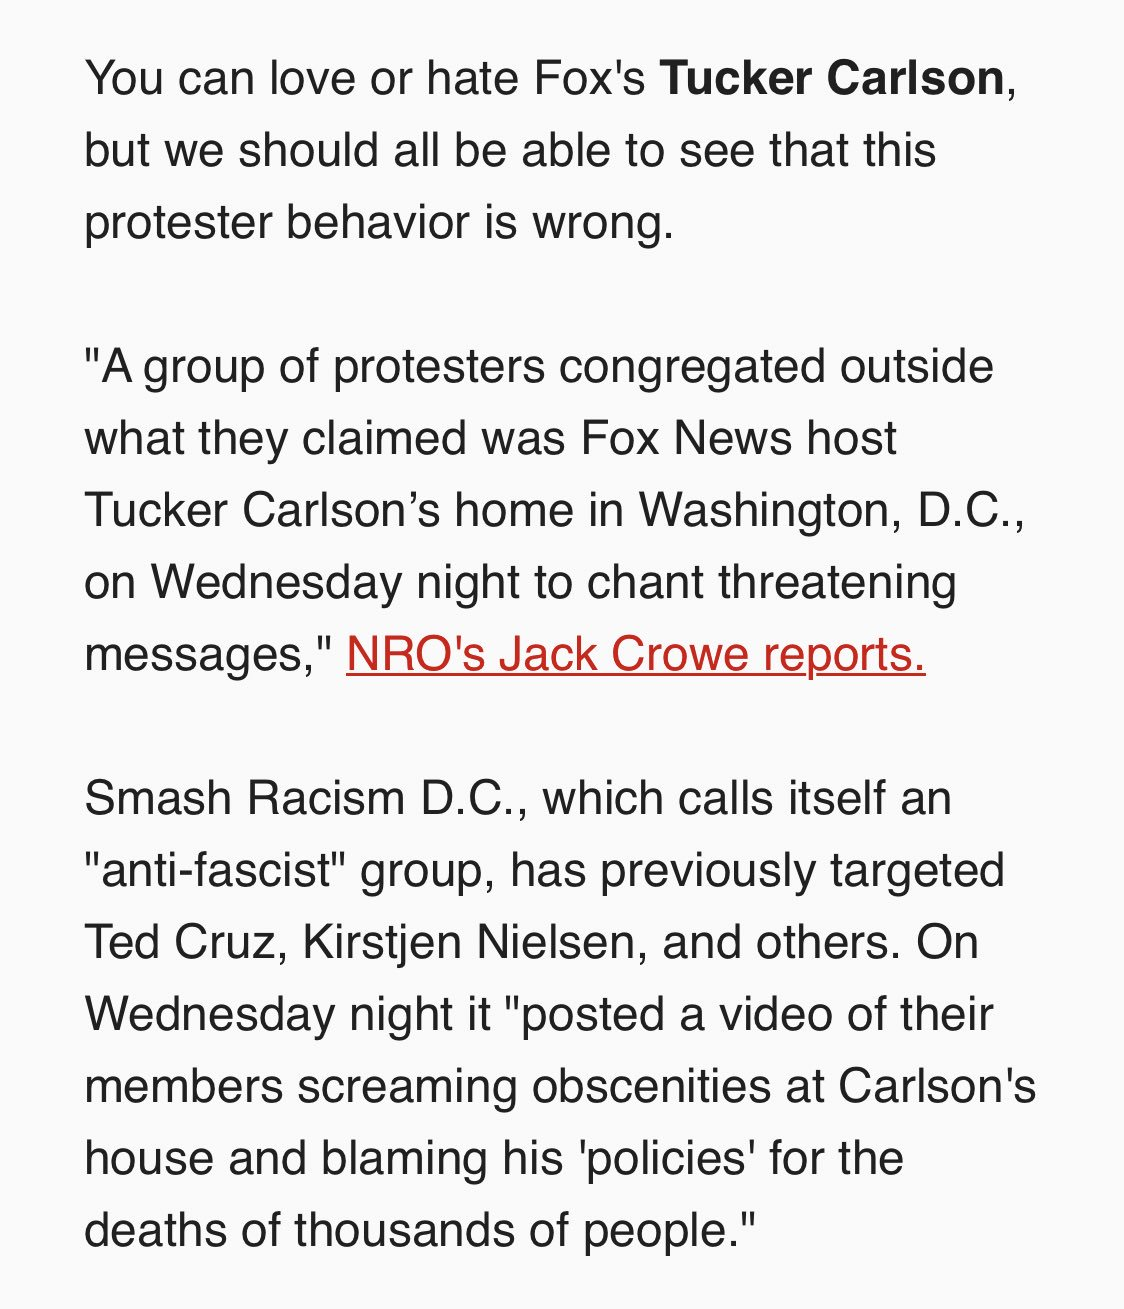 Seconding what @MegynKelly said earlier: Tucker Carlson does not deserve this. (https://t.co/diNsXu9cCb) https://t.co/TdDjCHQ4AI